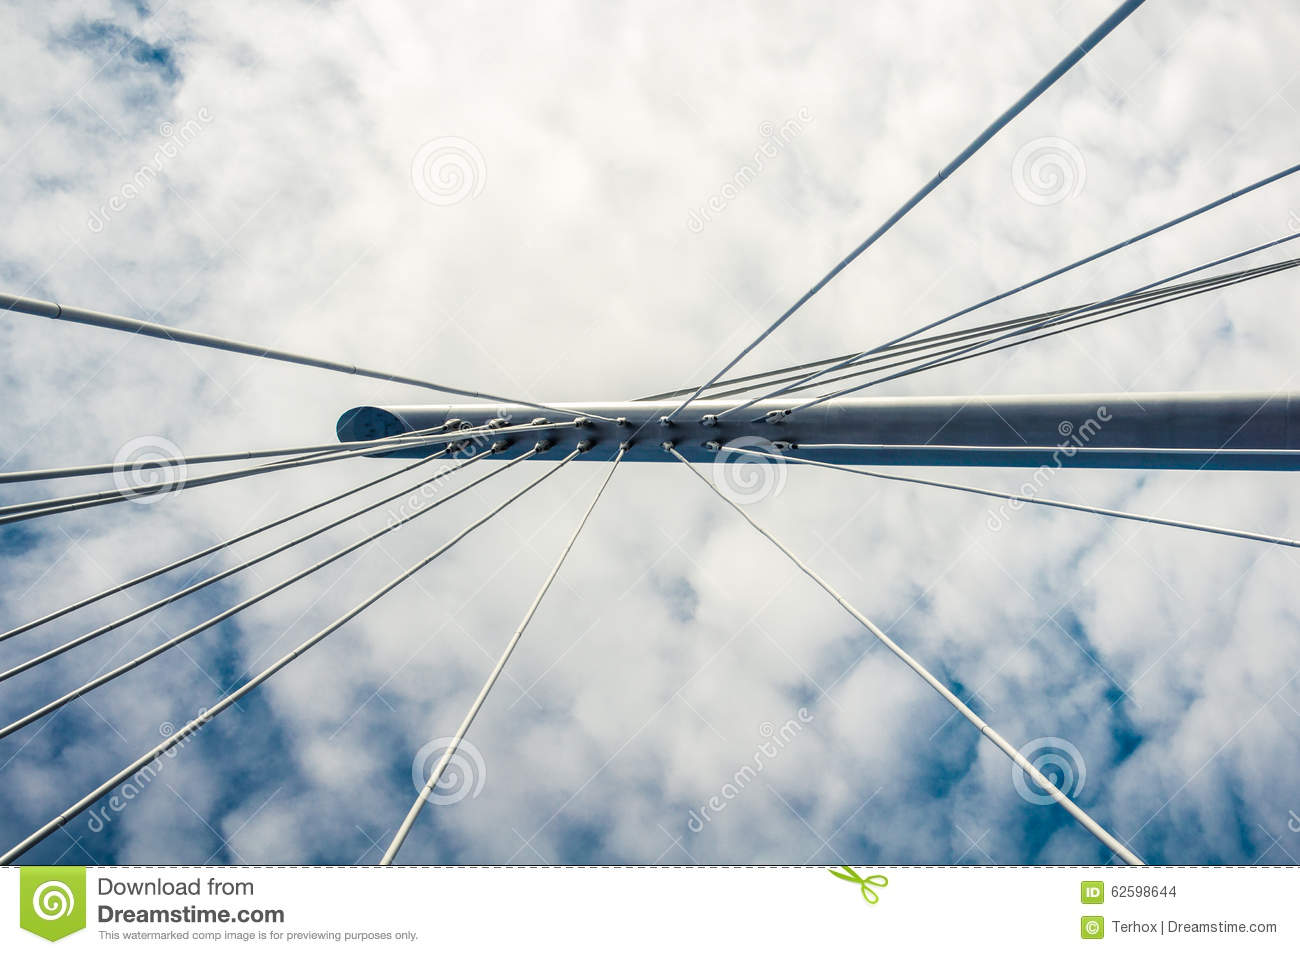 Cable support of bridge stock photo. Image of support - 62598644